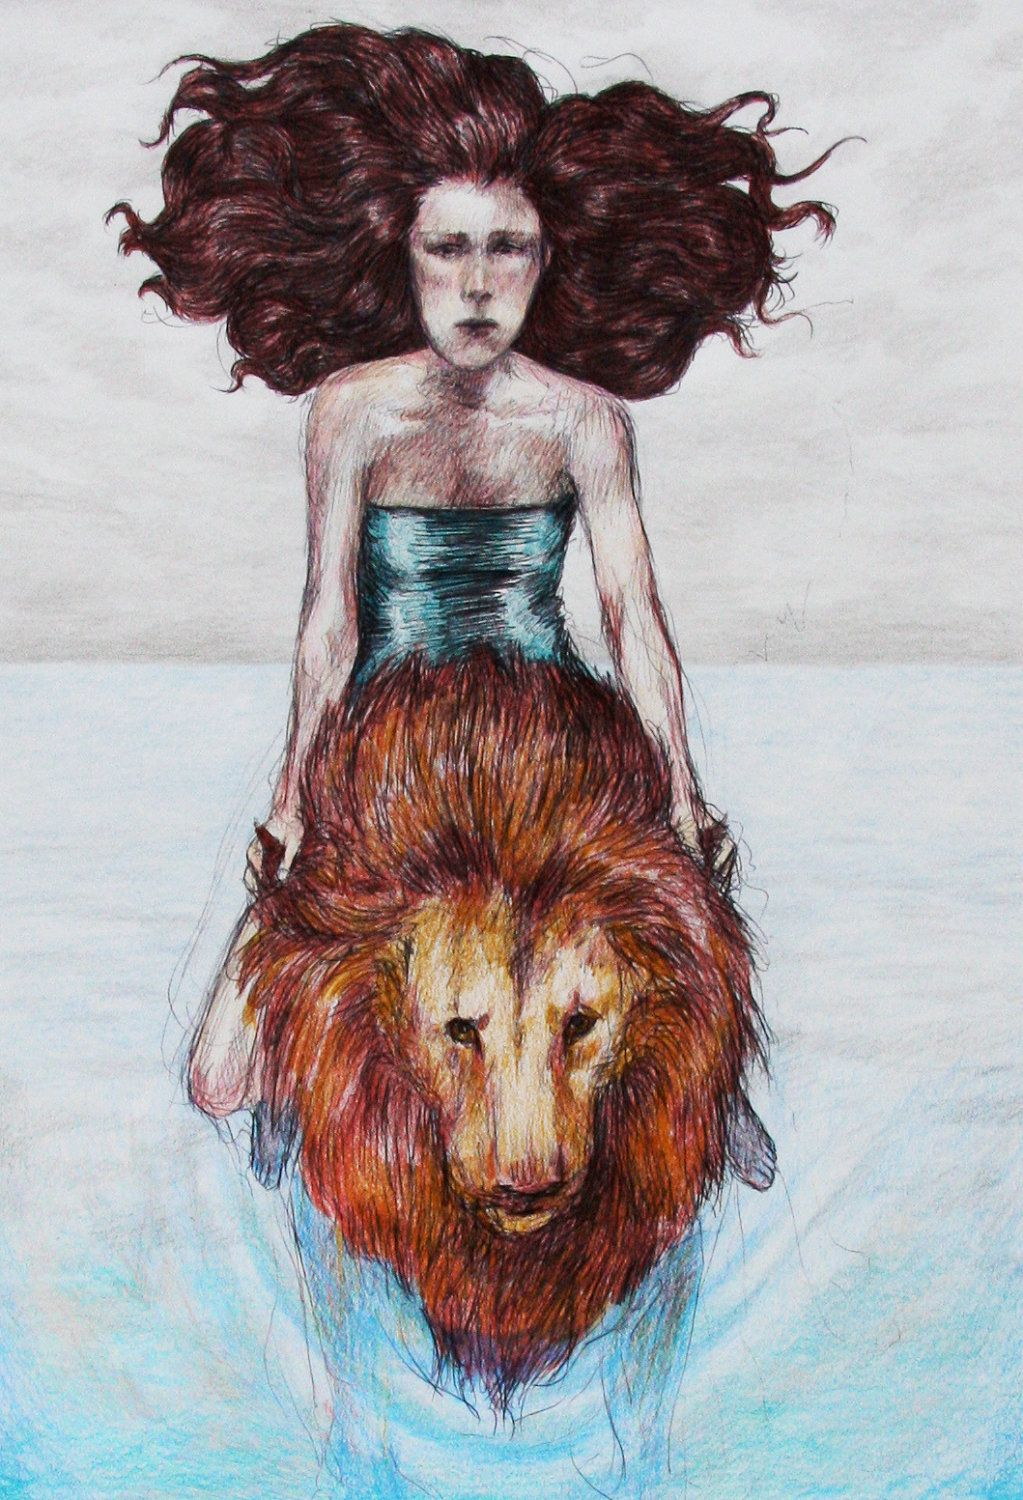 Riding a lion across the sea